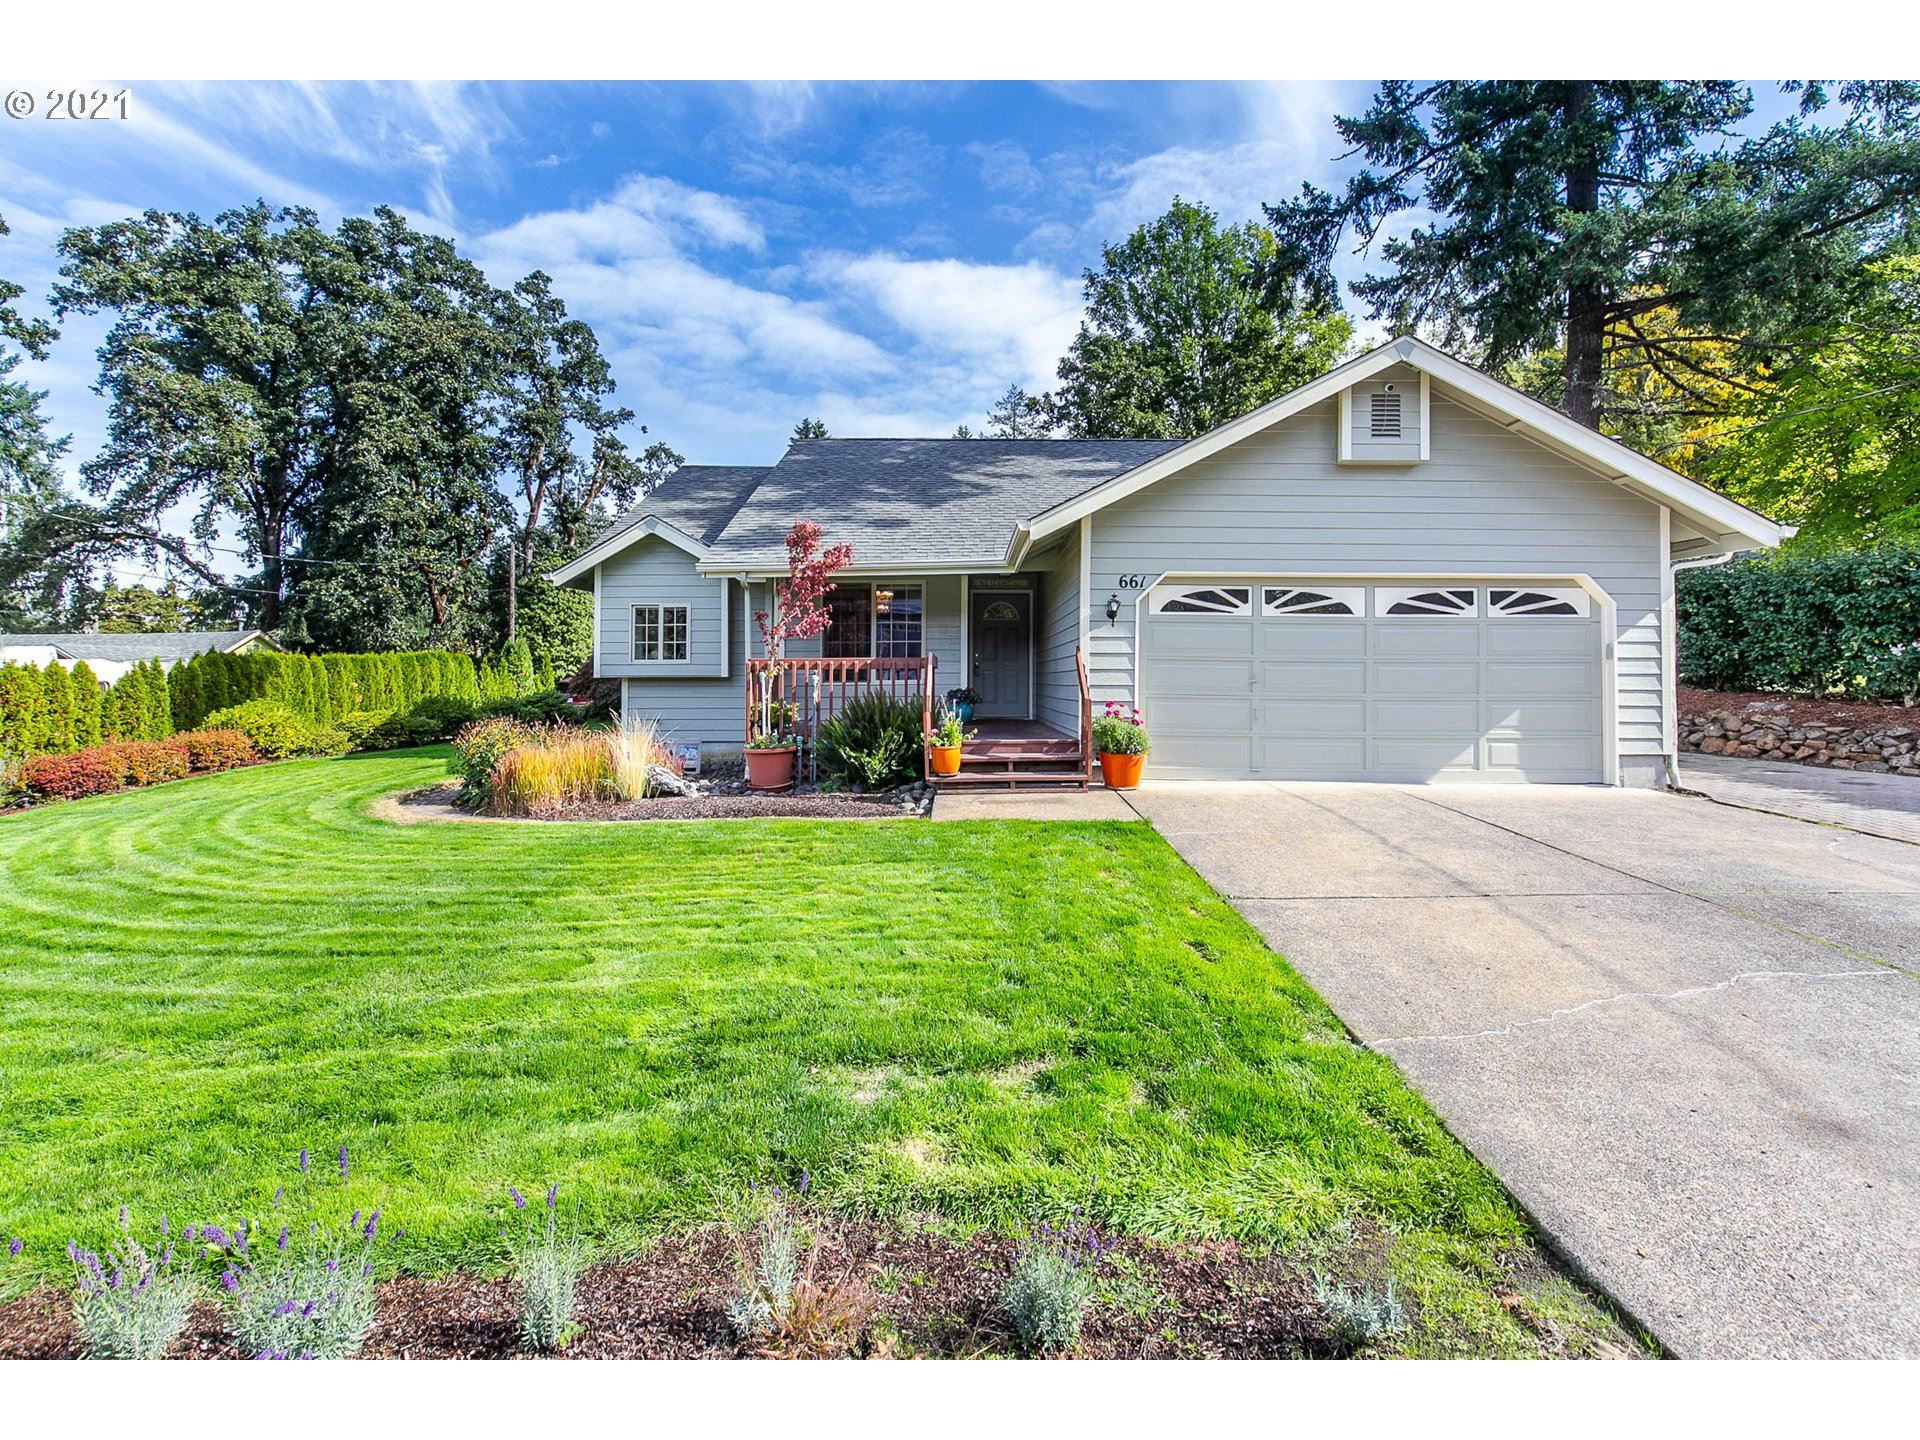 661 S 70TH ST, Springfield, OR 97478 - MLS#: 21557120